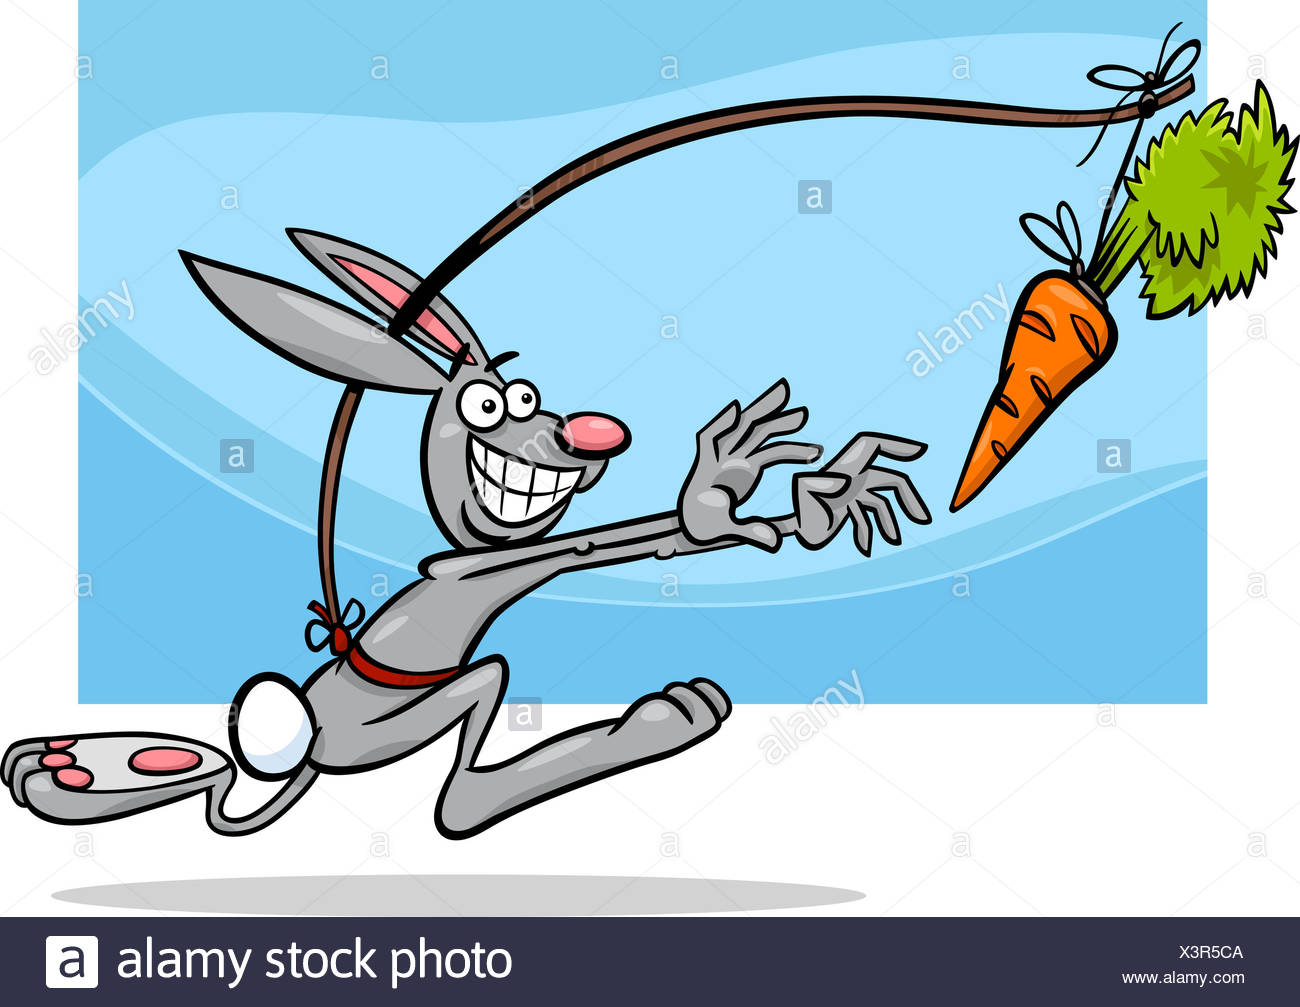 hight resolution of motivation clipart dangle dangling a carrot stock image download